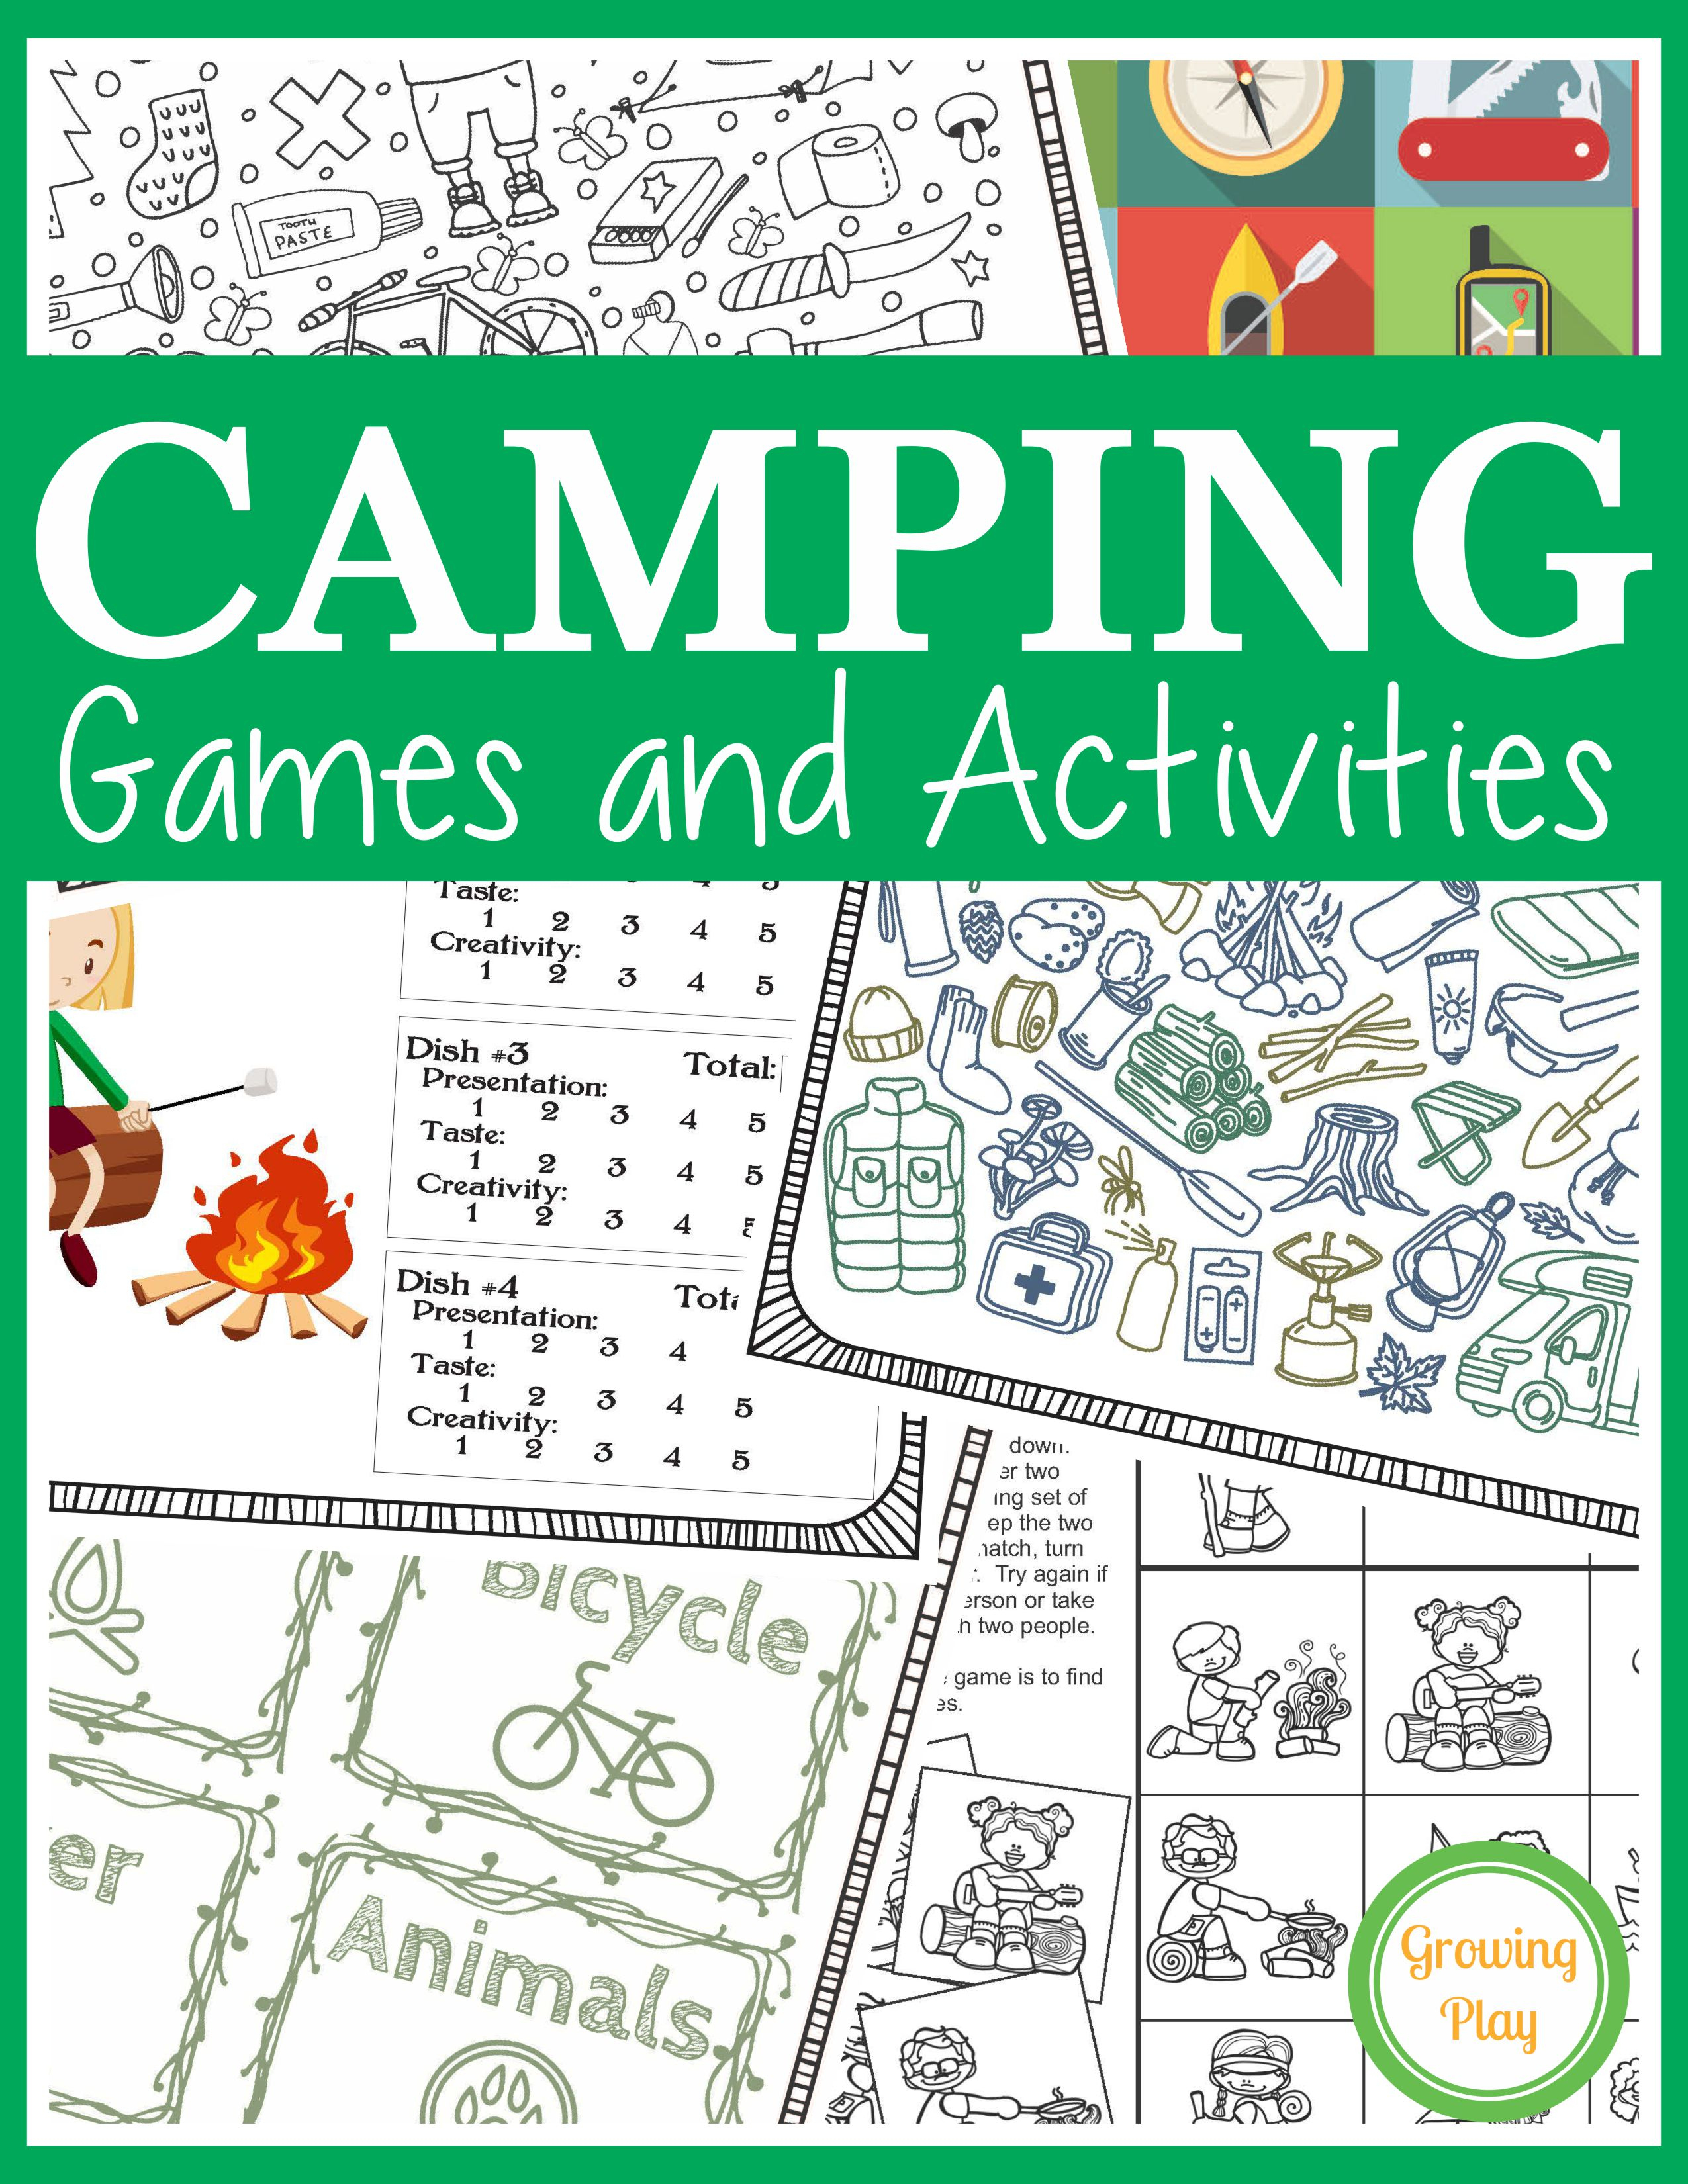 Camping Games And Activities - Growing Play - Free Printable Camping Games